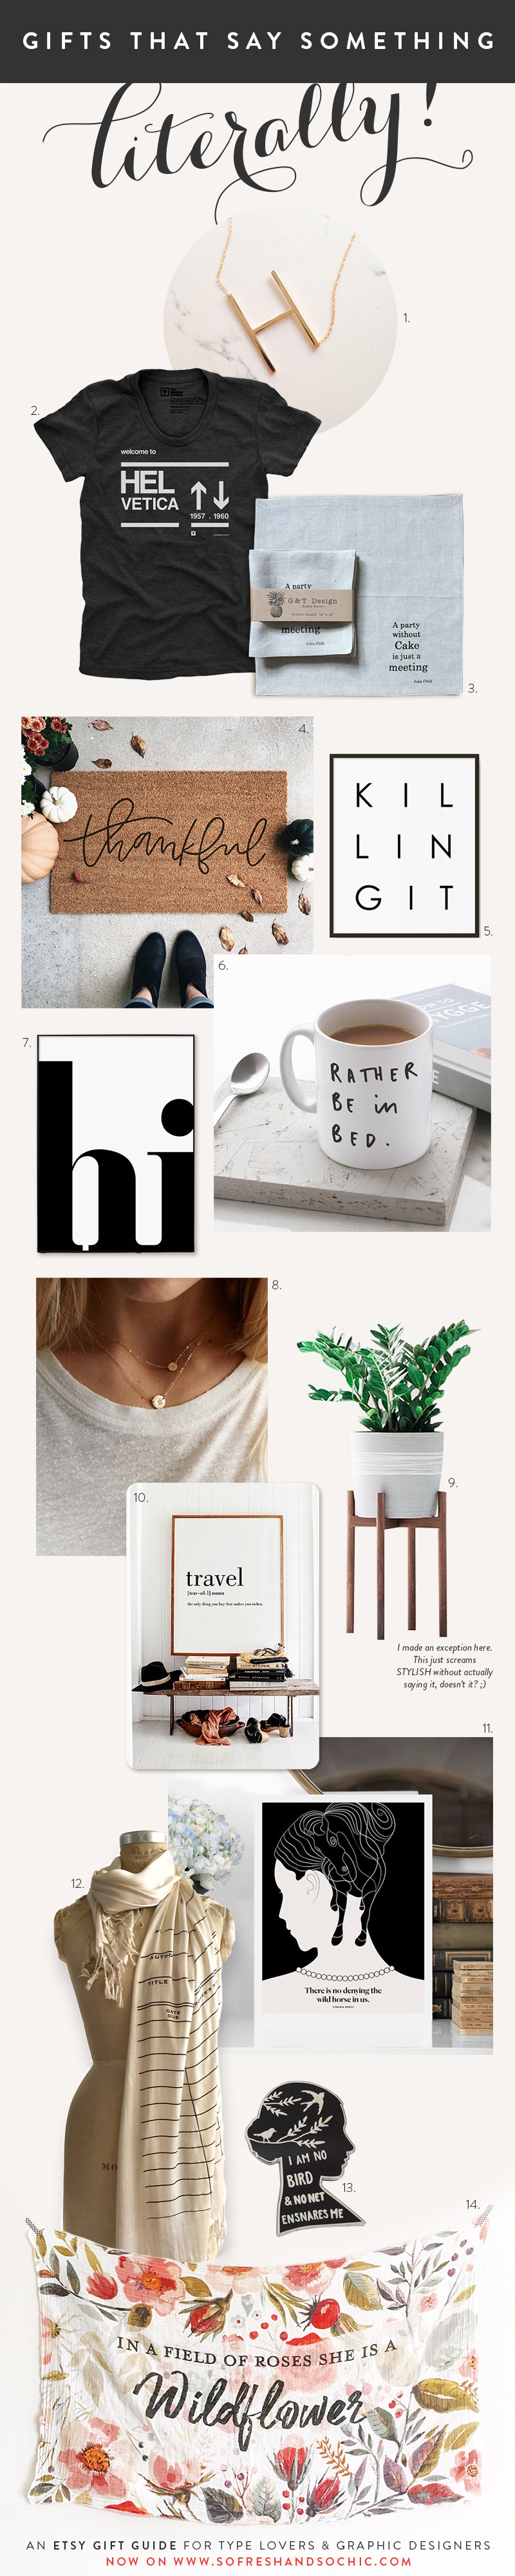 So Fresh and So Chic // An Etsy Gift Guide for Type Lovers and Graphic Designers #giftguide #etsygifts #sofreshandsochic #typography